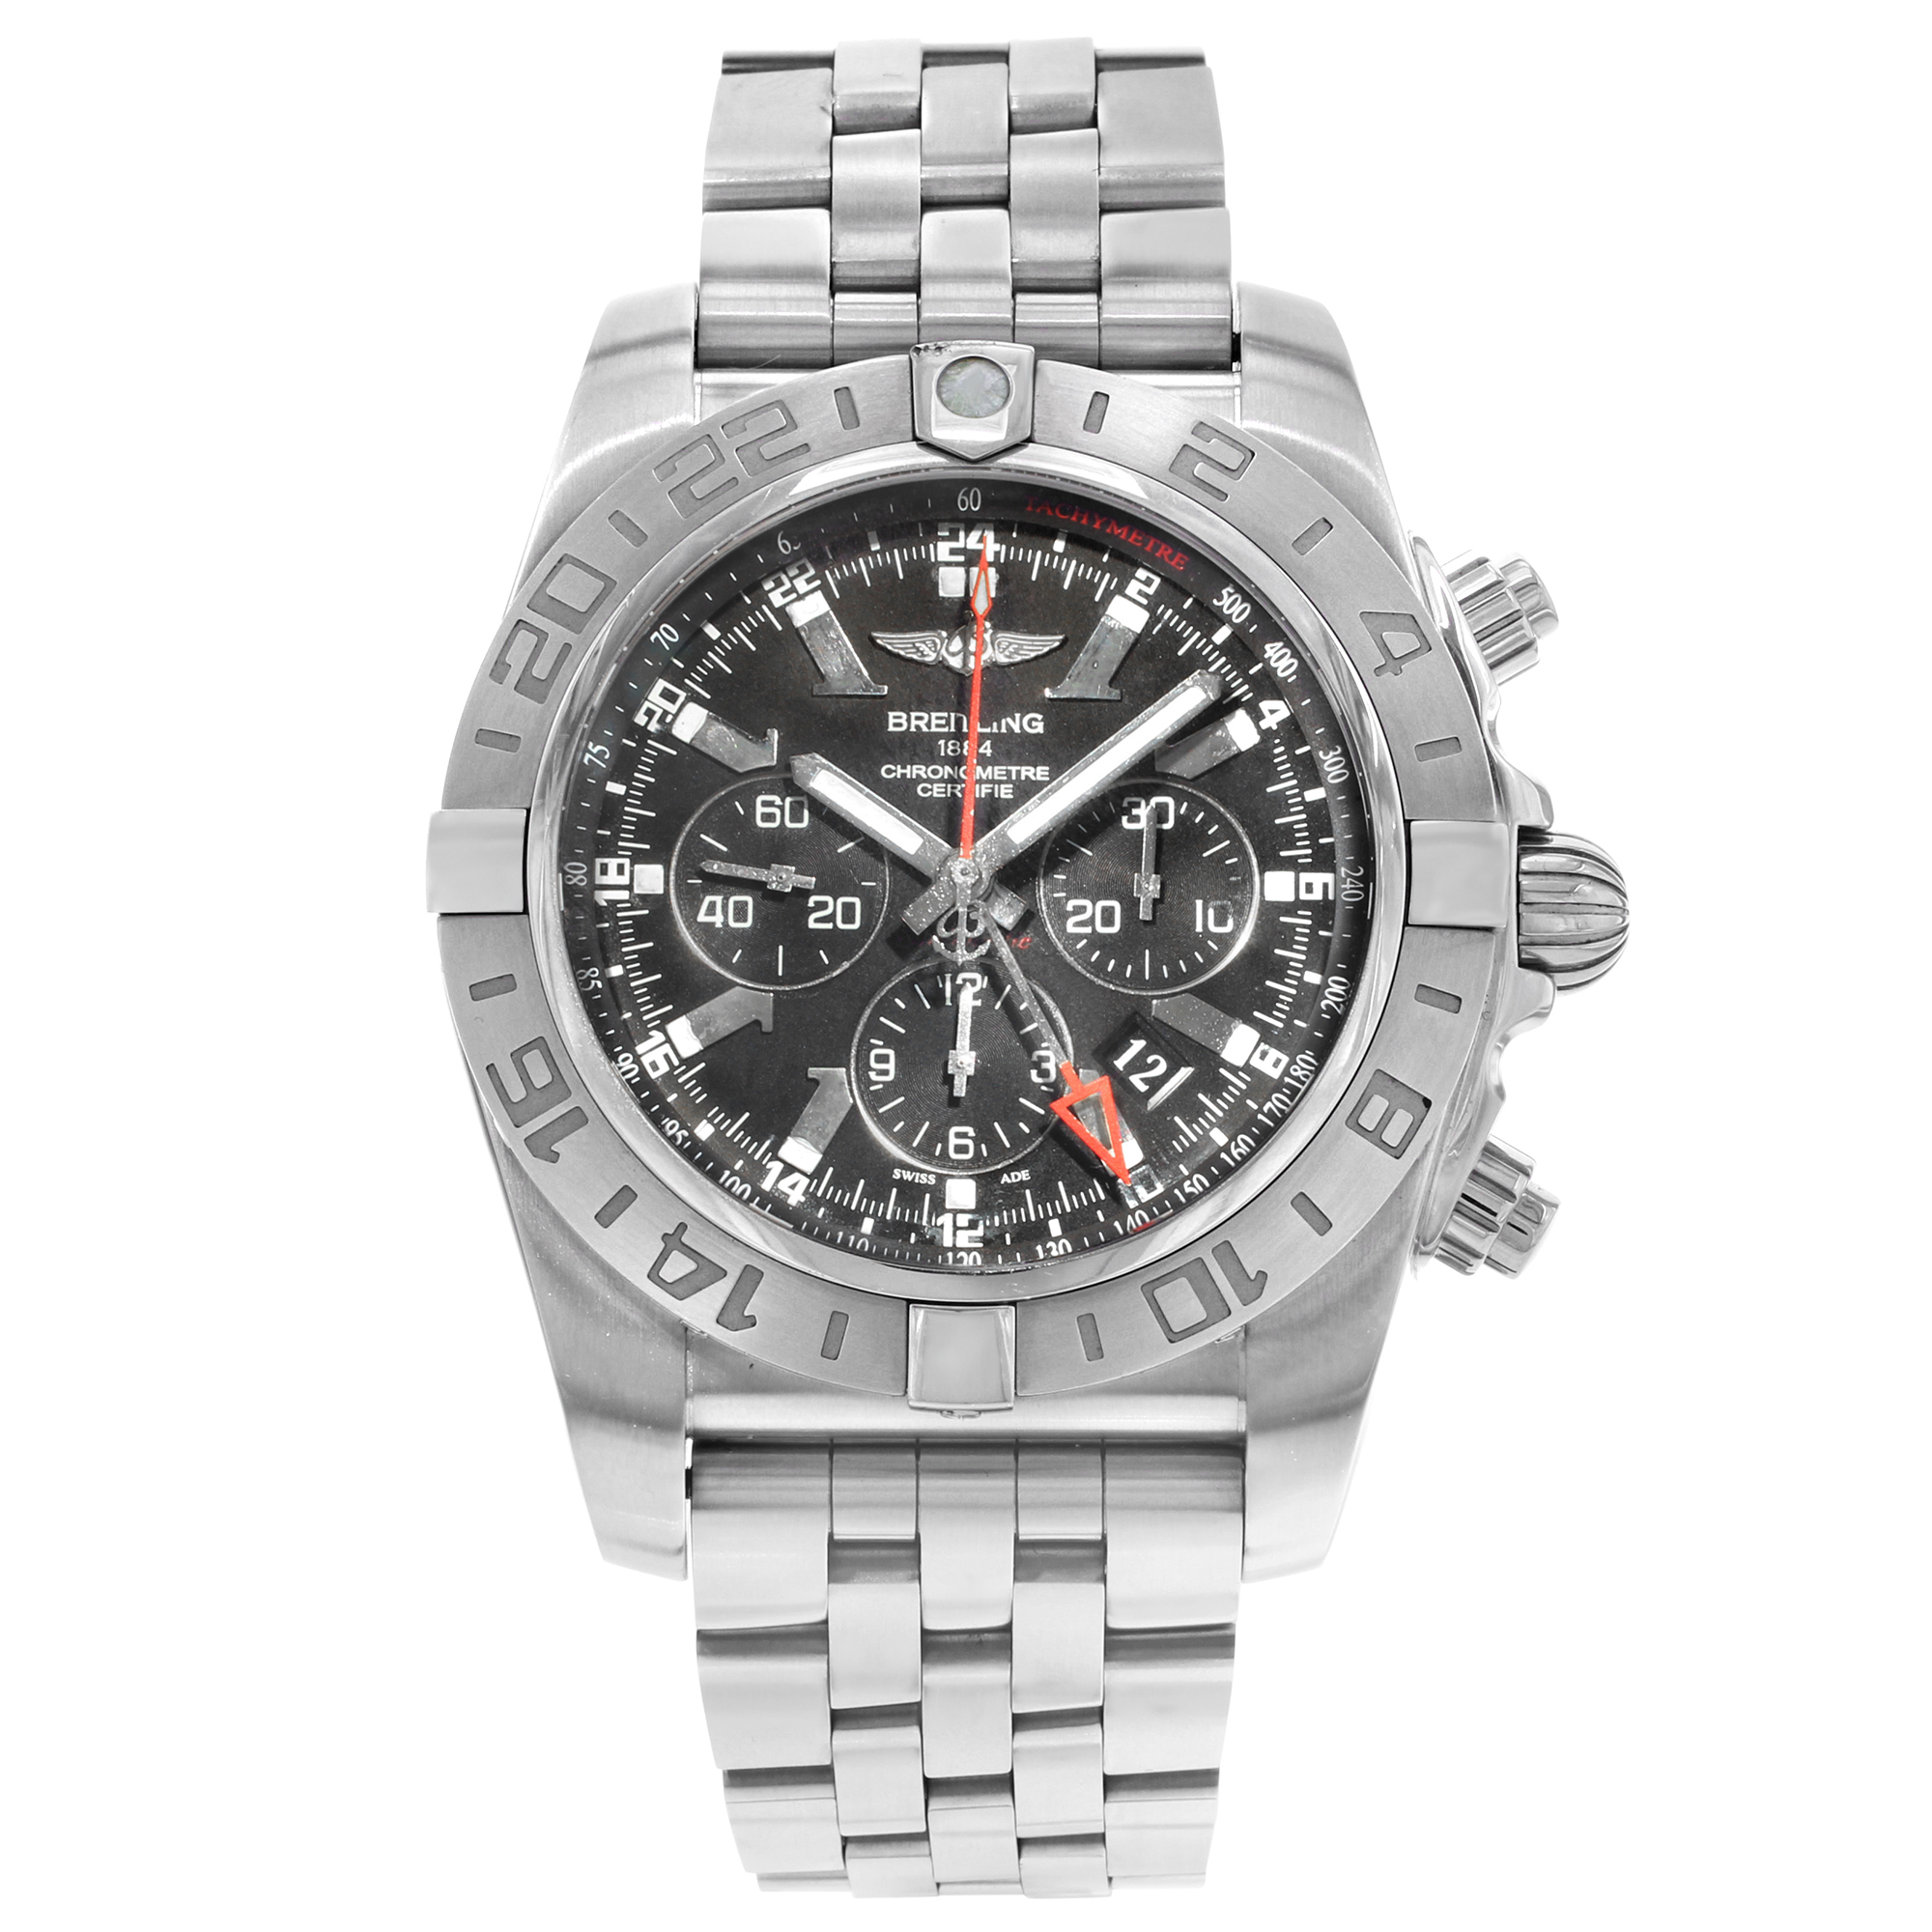 c86b05793d2 Breitling Chronomat GMT Black Dial Steel Automatic Mens Watch  AB041210 BB48-384A